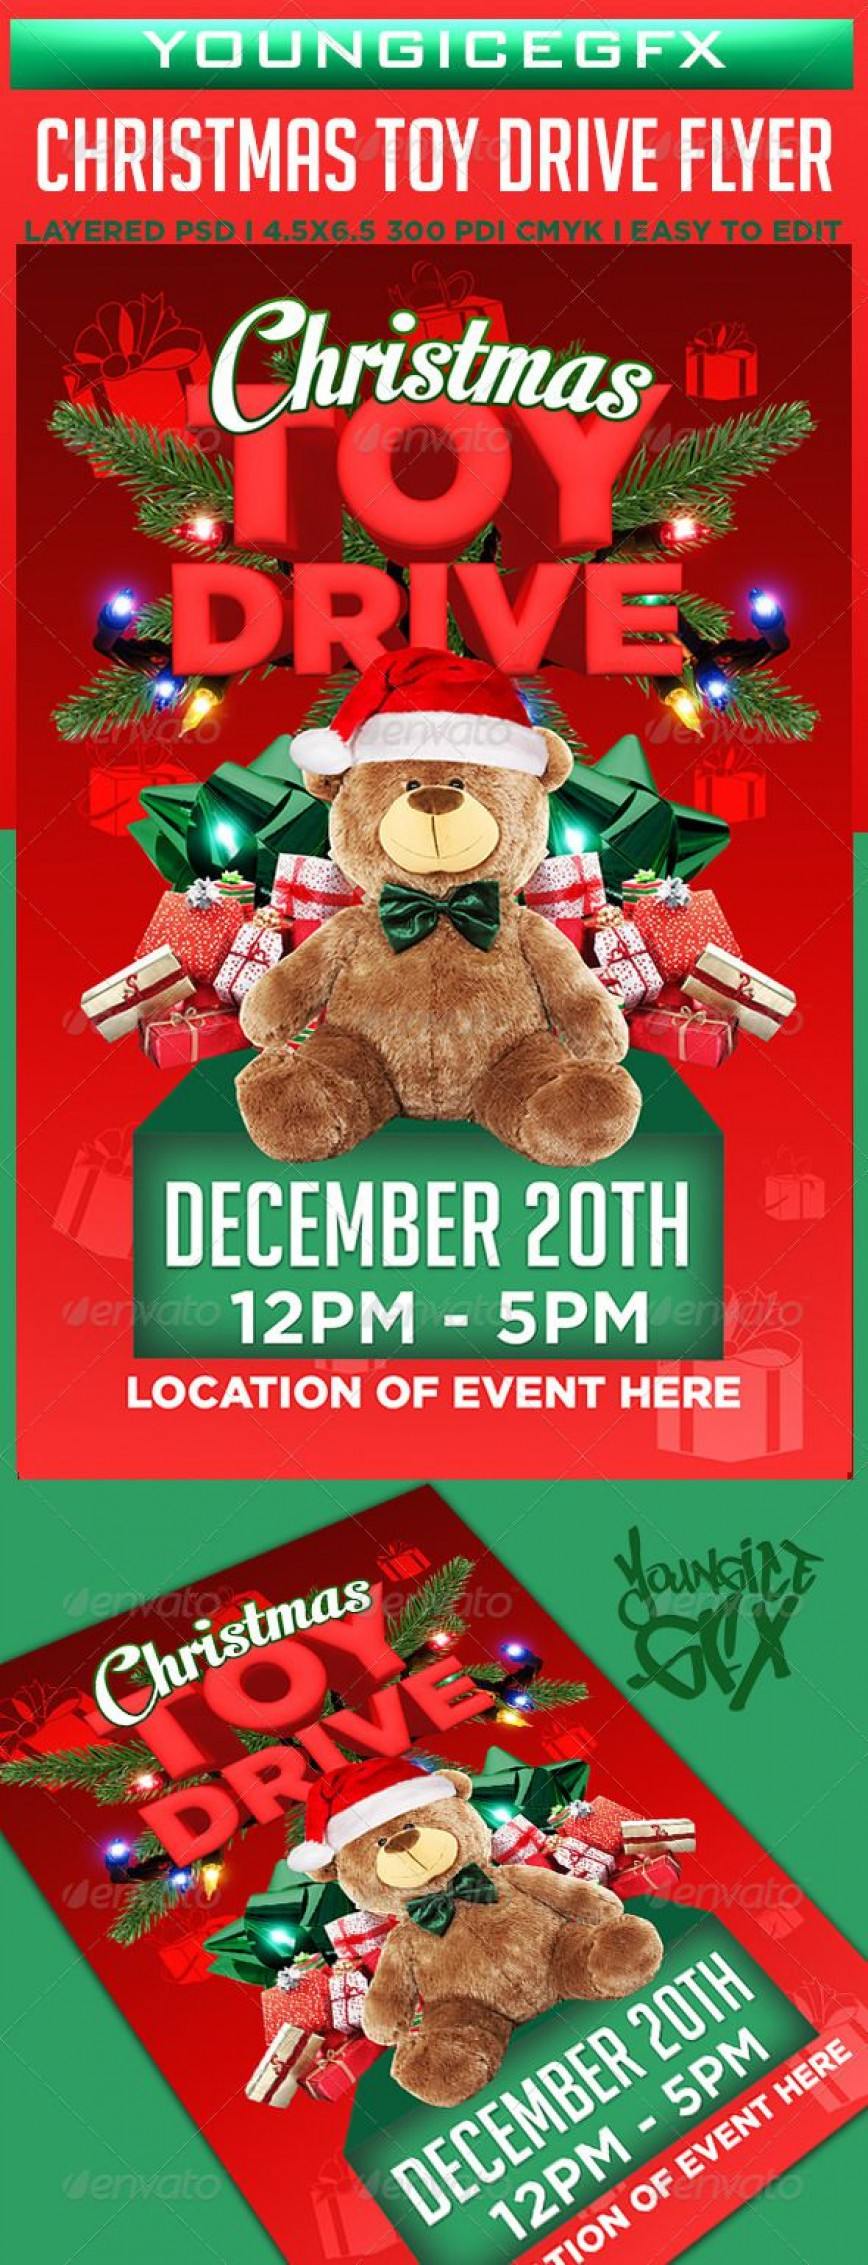 005 Dreaded Toy Drive Flyer Template Design  Christma Free Download